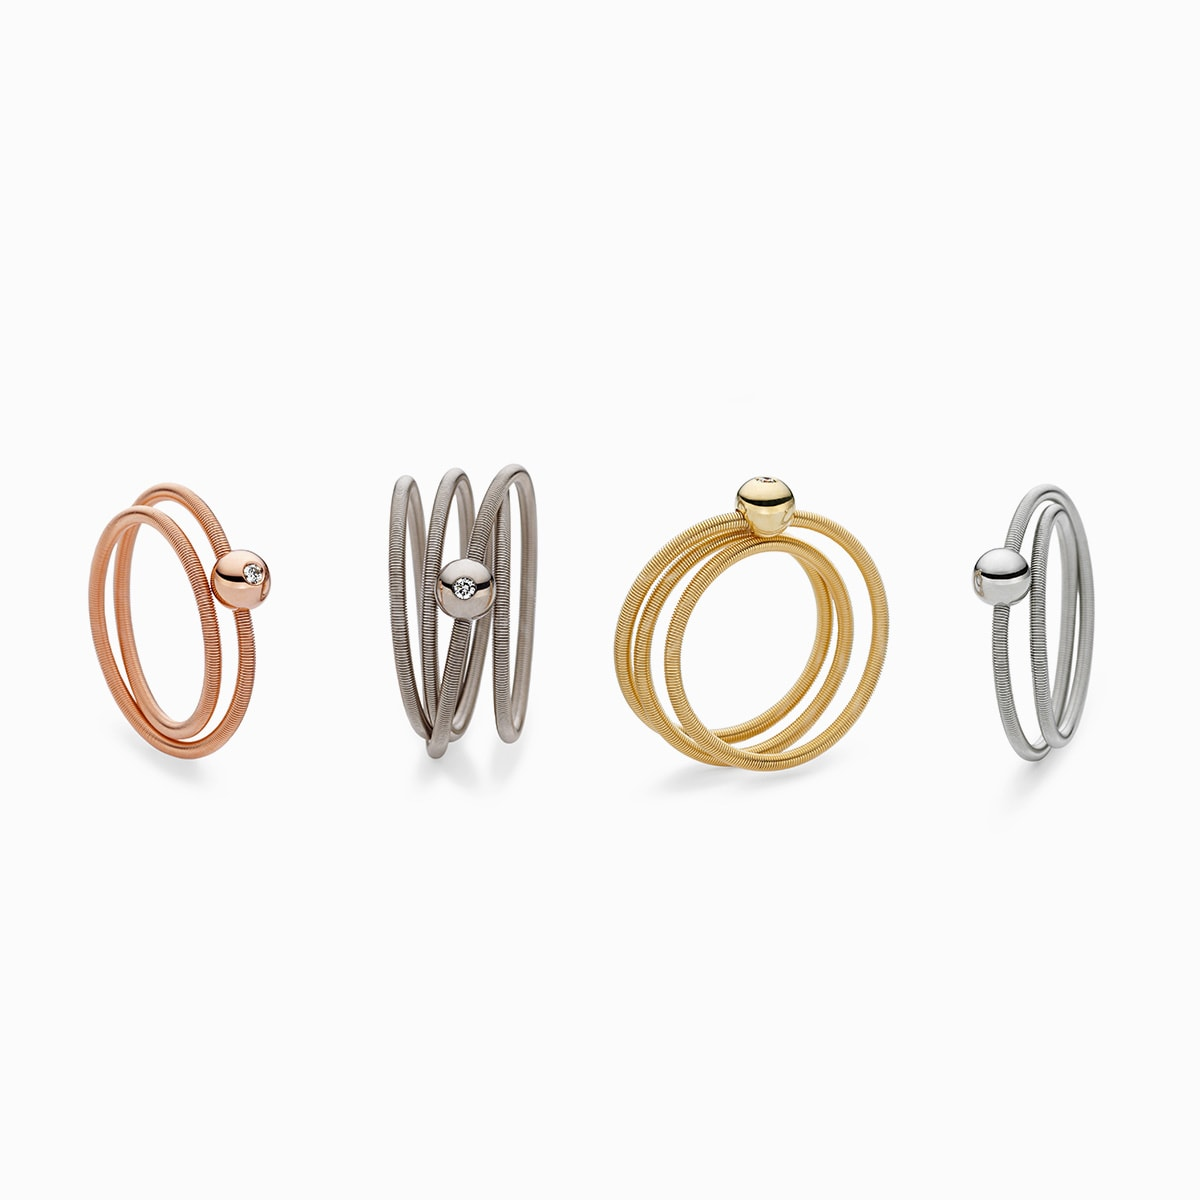 Niessing Colette Rings